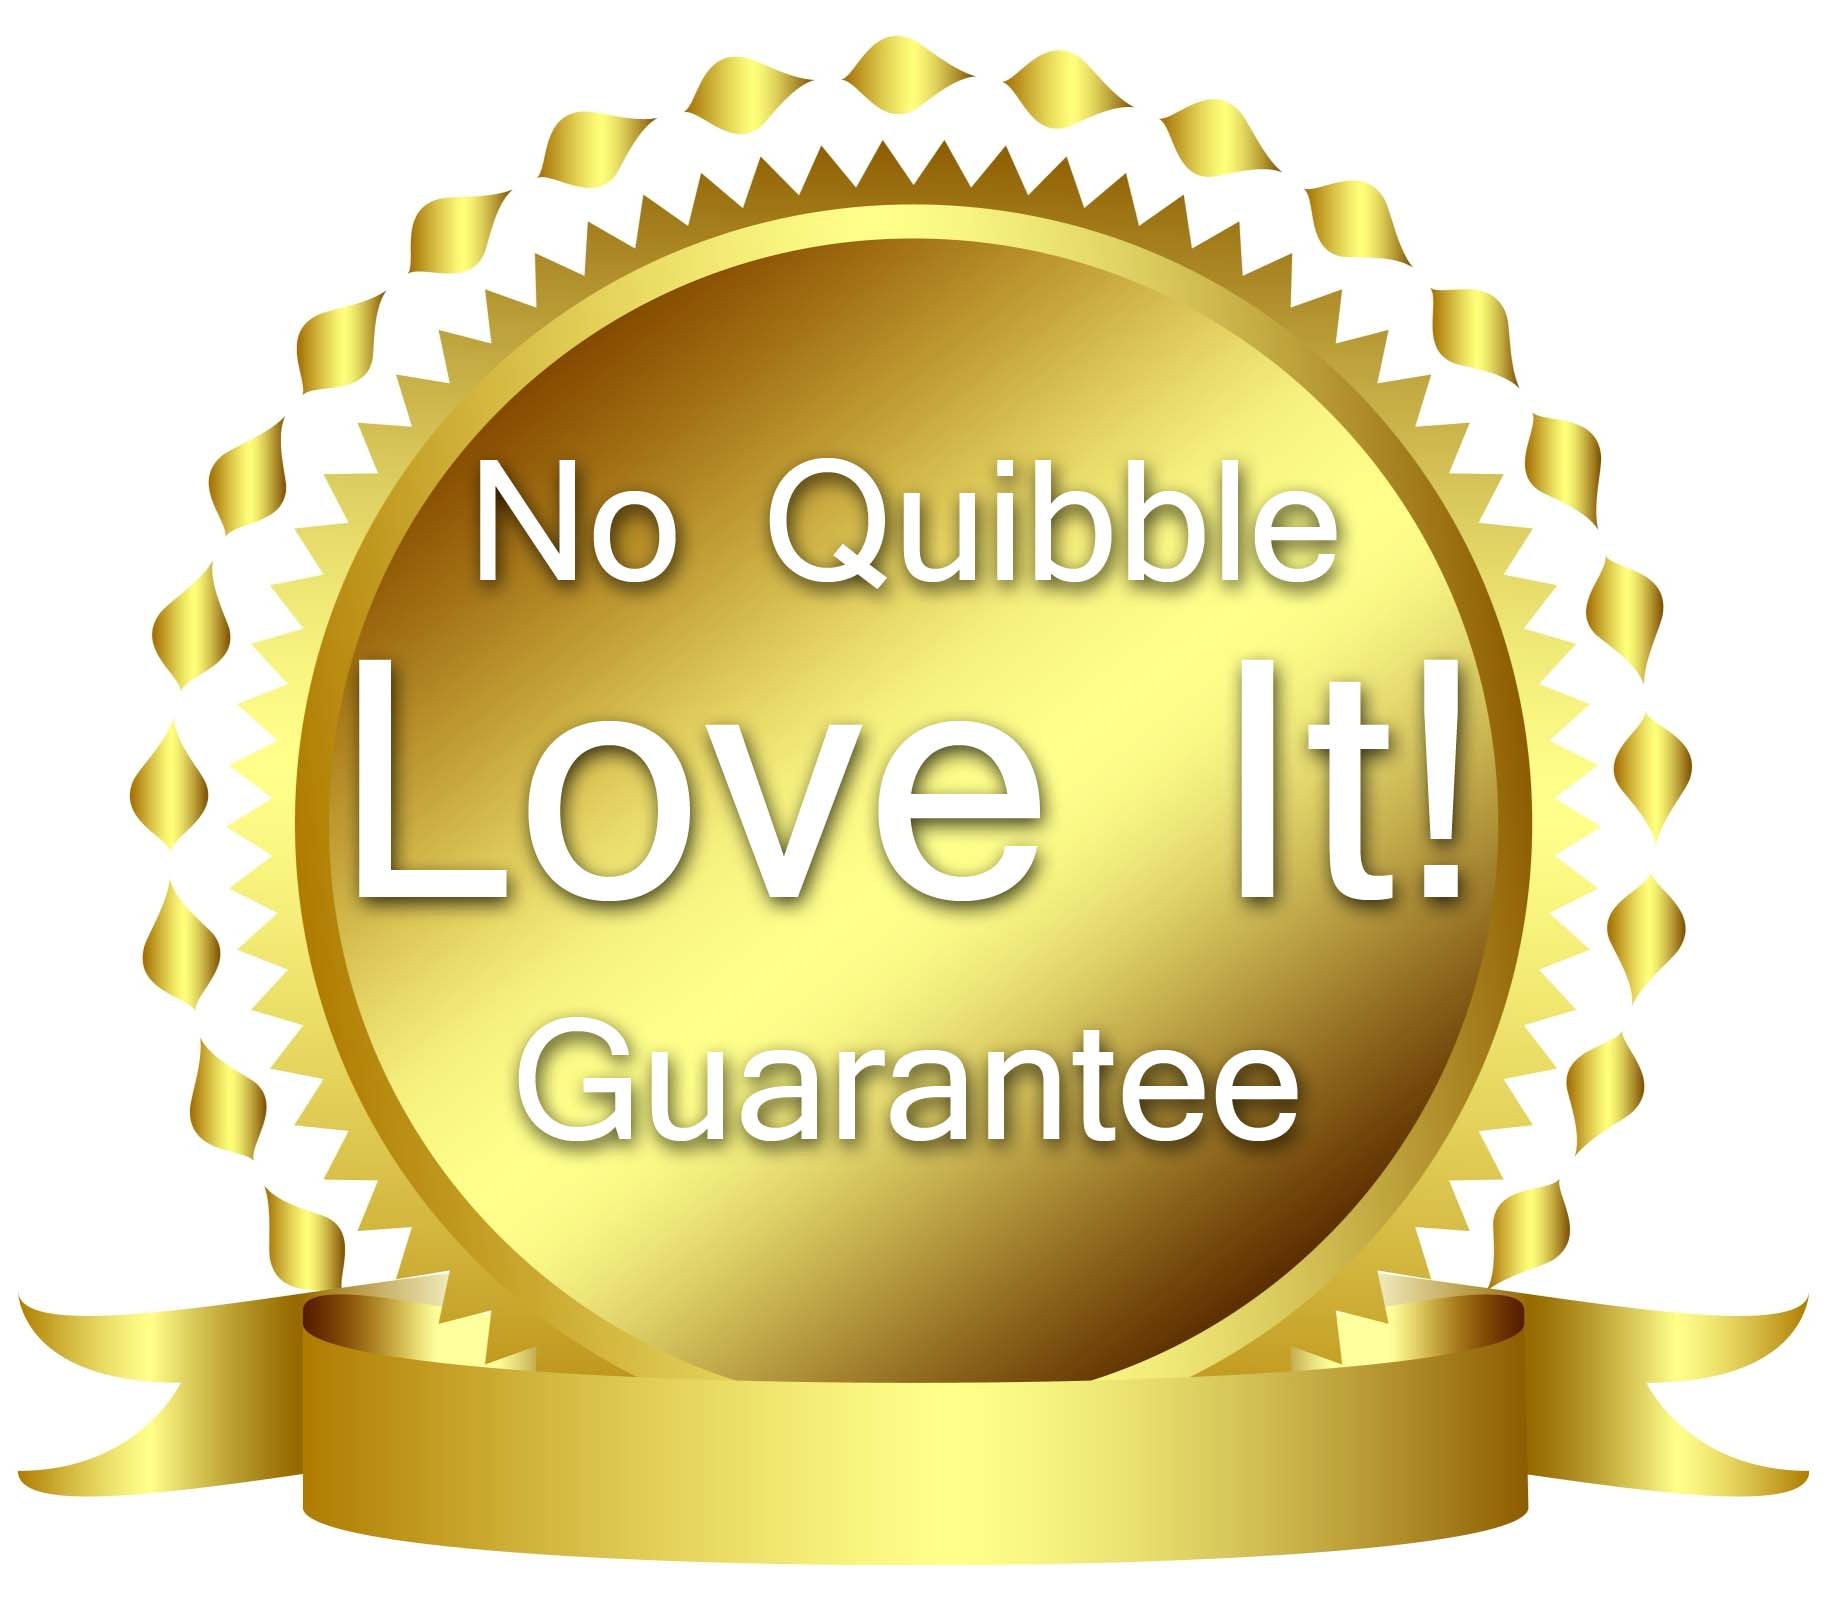 You've got nothing to lose with our 'Love it' guarantee